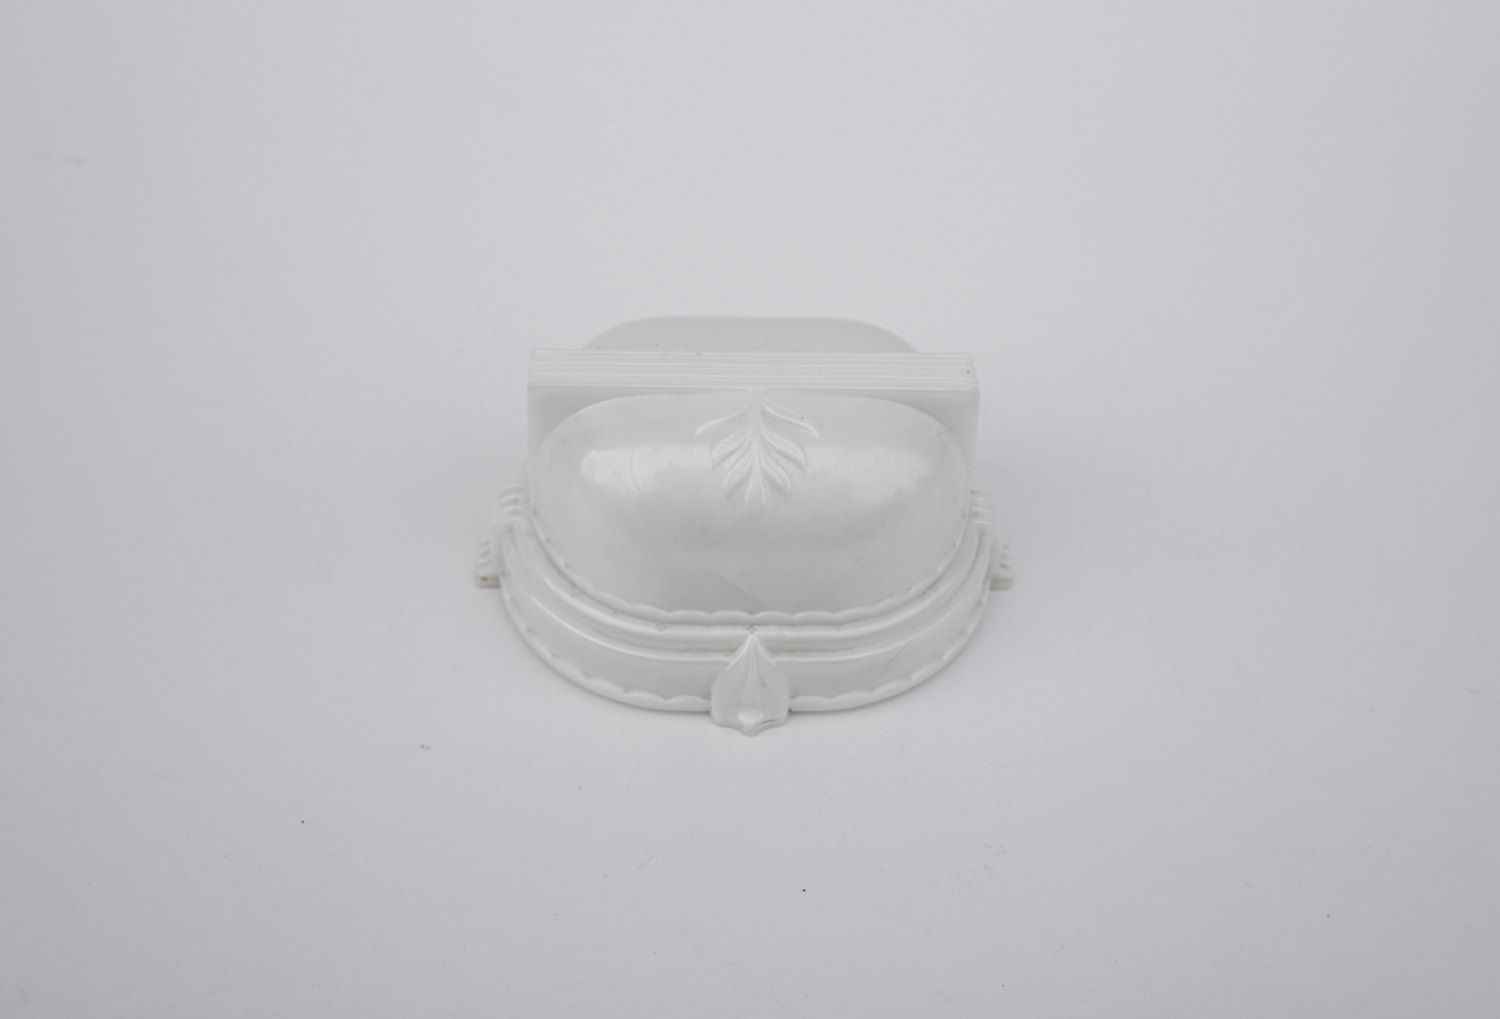 Vintage SUC Ring Box Celluloid White Presentation Box Made in USA Pearly Finish…